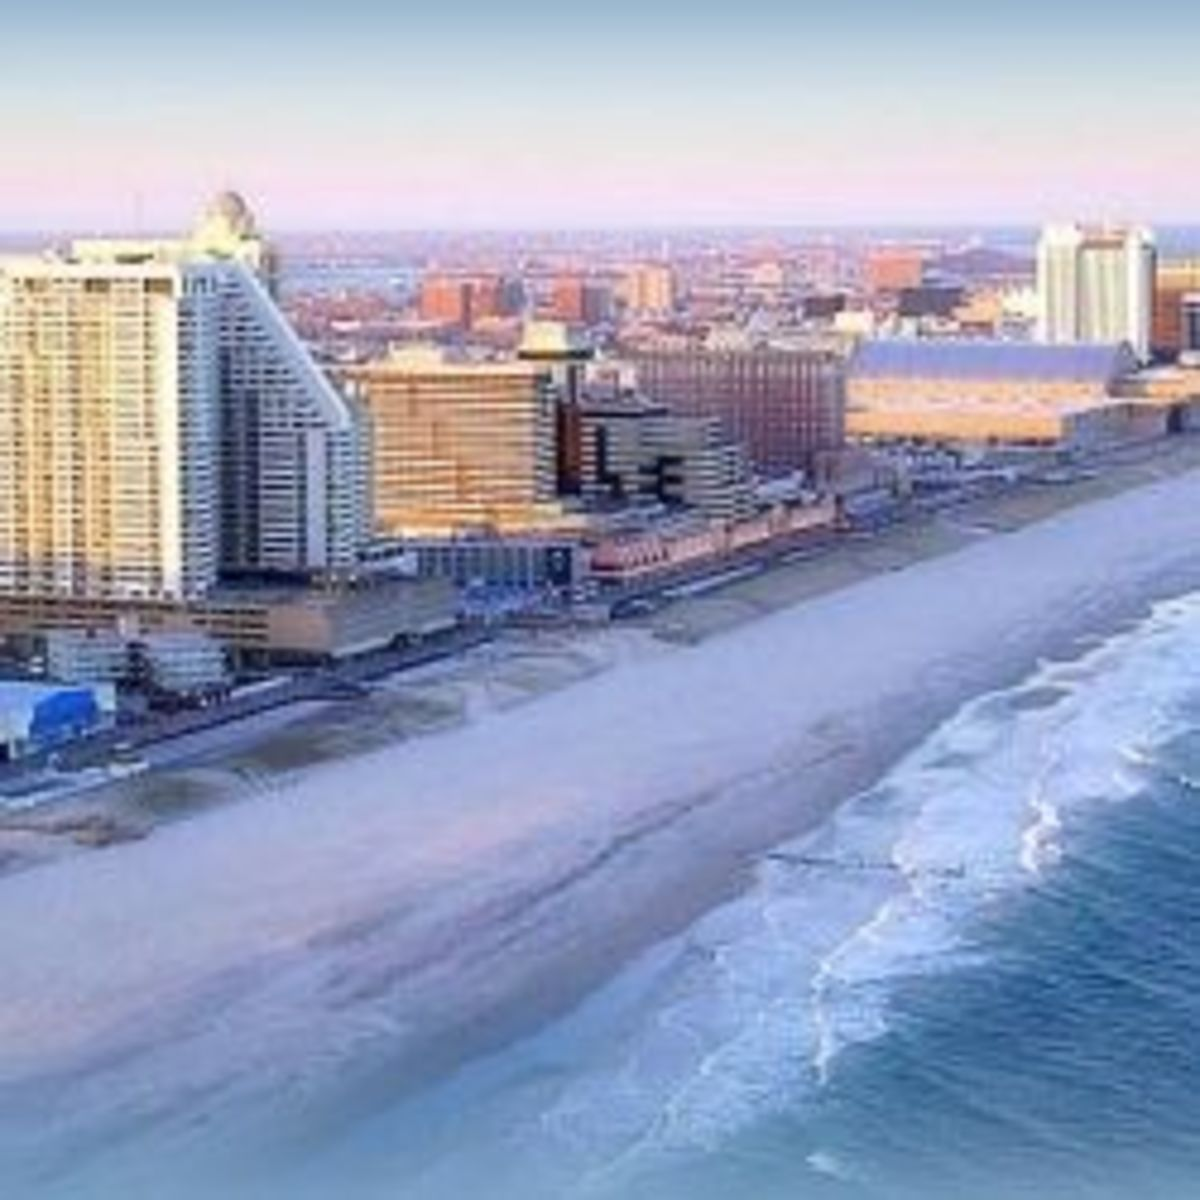 Image credit: http://blog.lastbash.com/2010/03/city-guide-atlantic-city-new-jersey.html